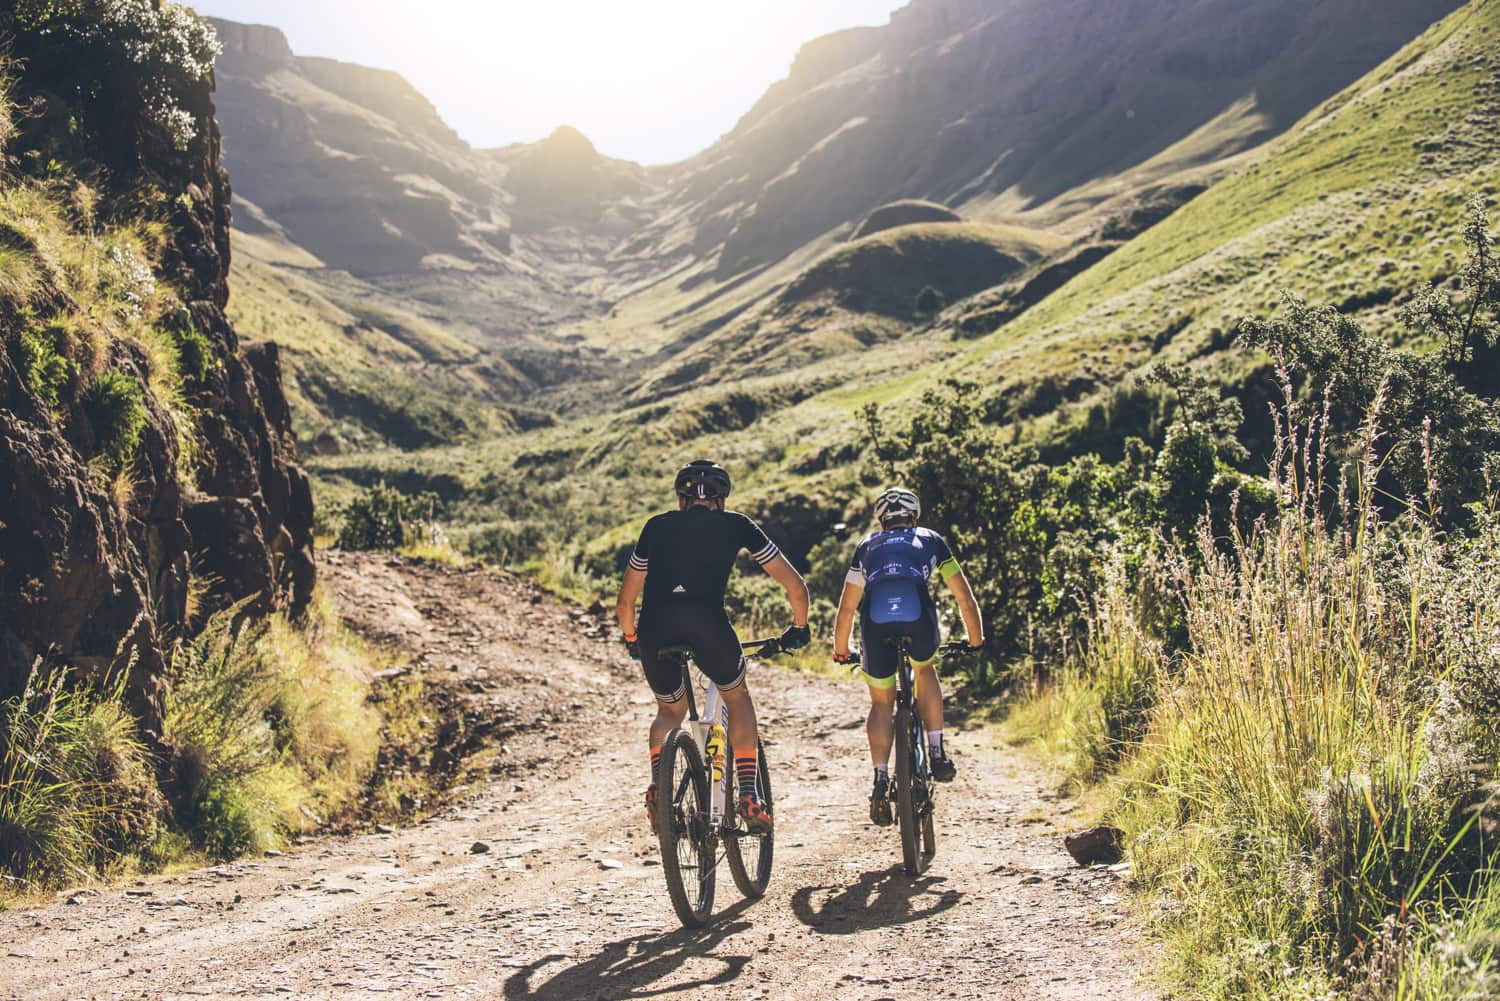 sani-pass-desmond-louw-bicycling-magazine-wowrides-0047